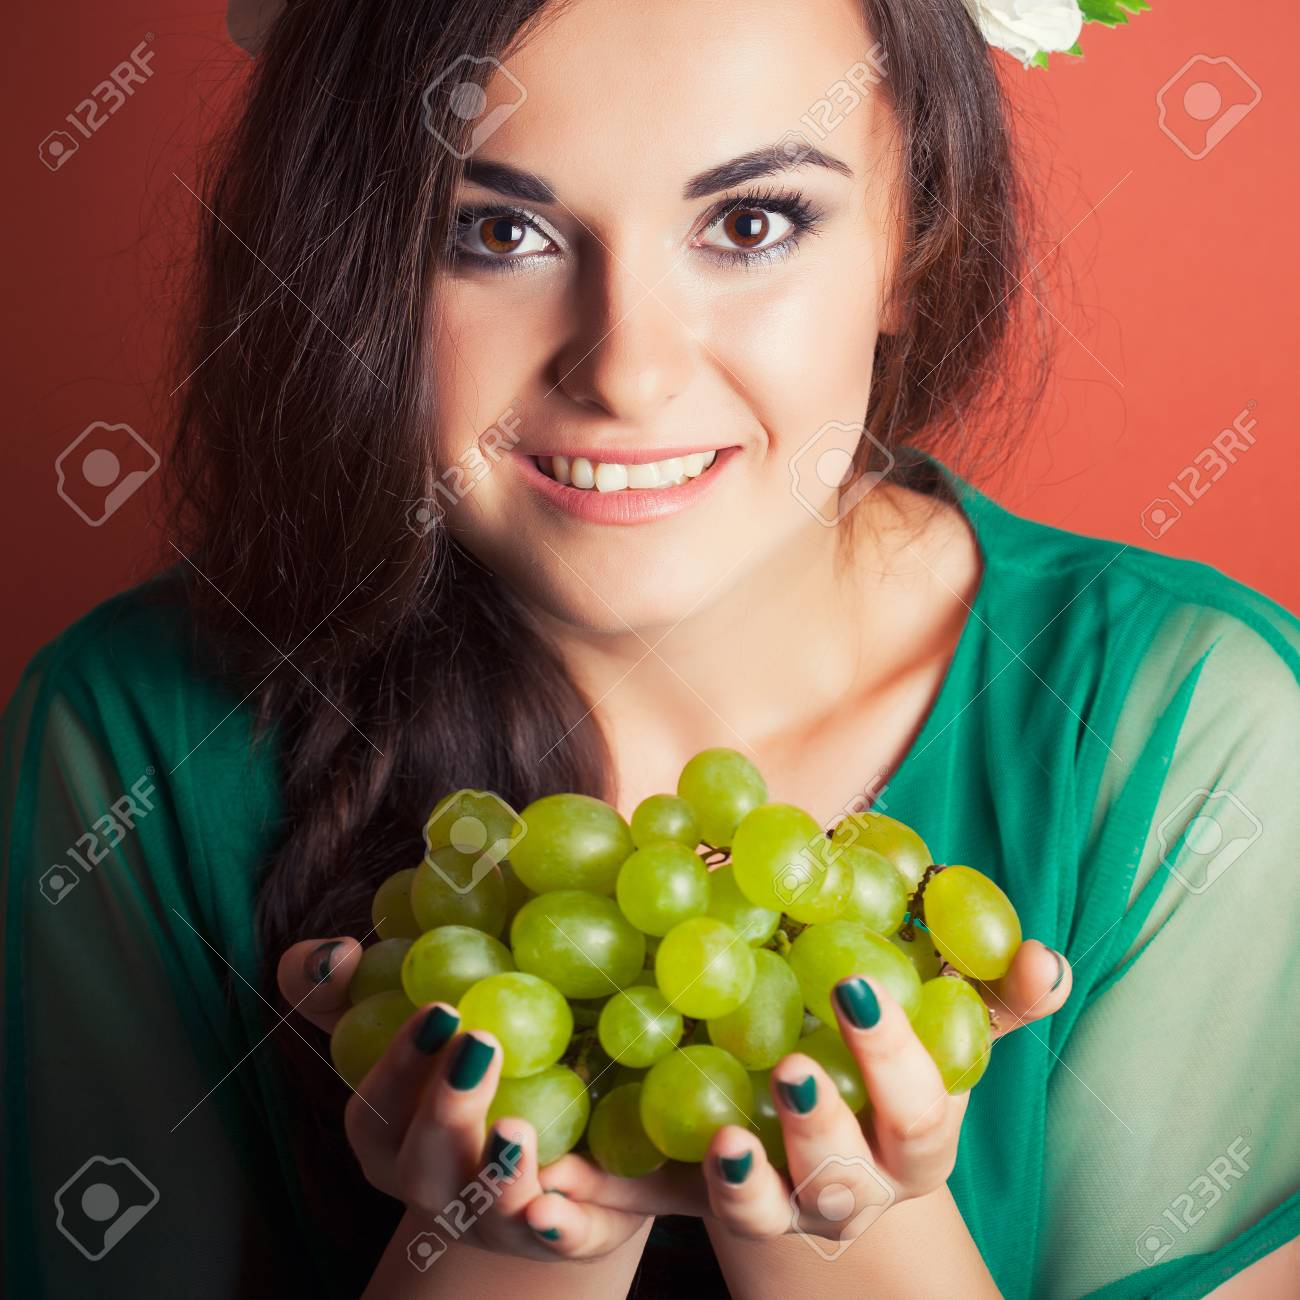 Beautiful Young Woman Wearing Wreath And Holding Green Grapes